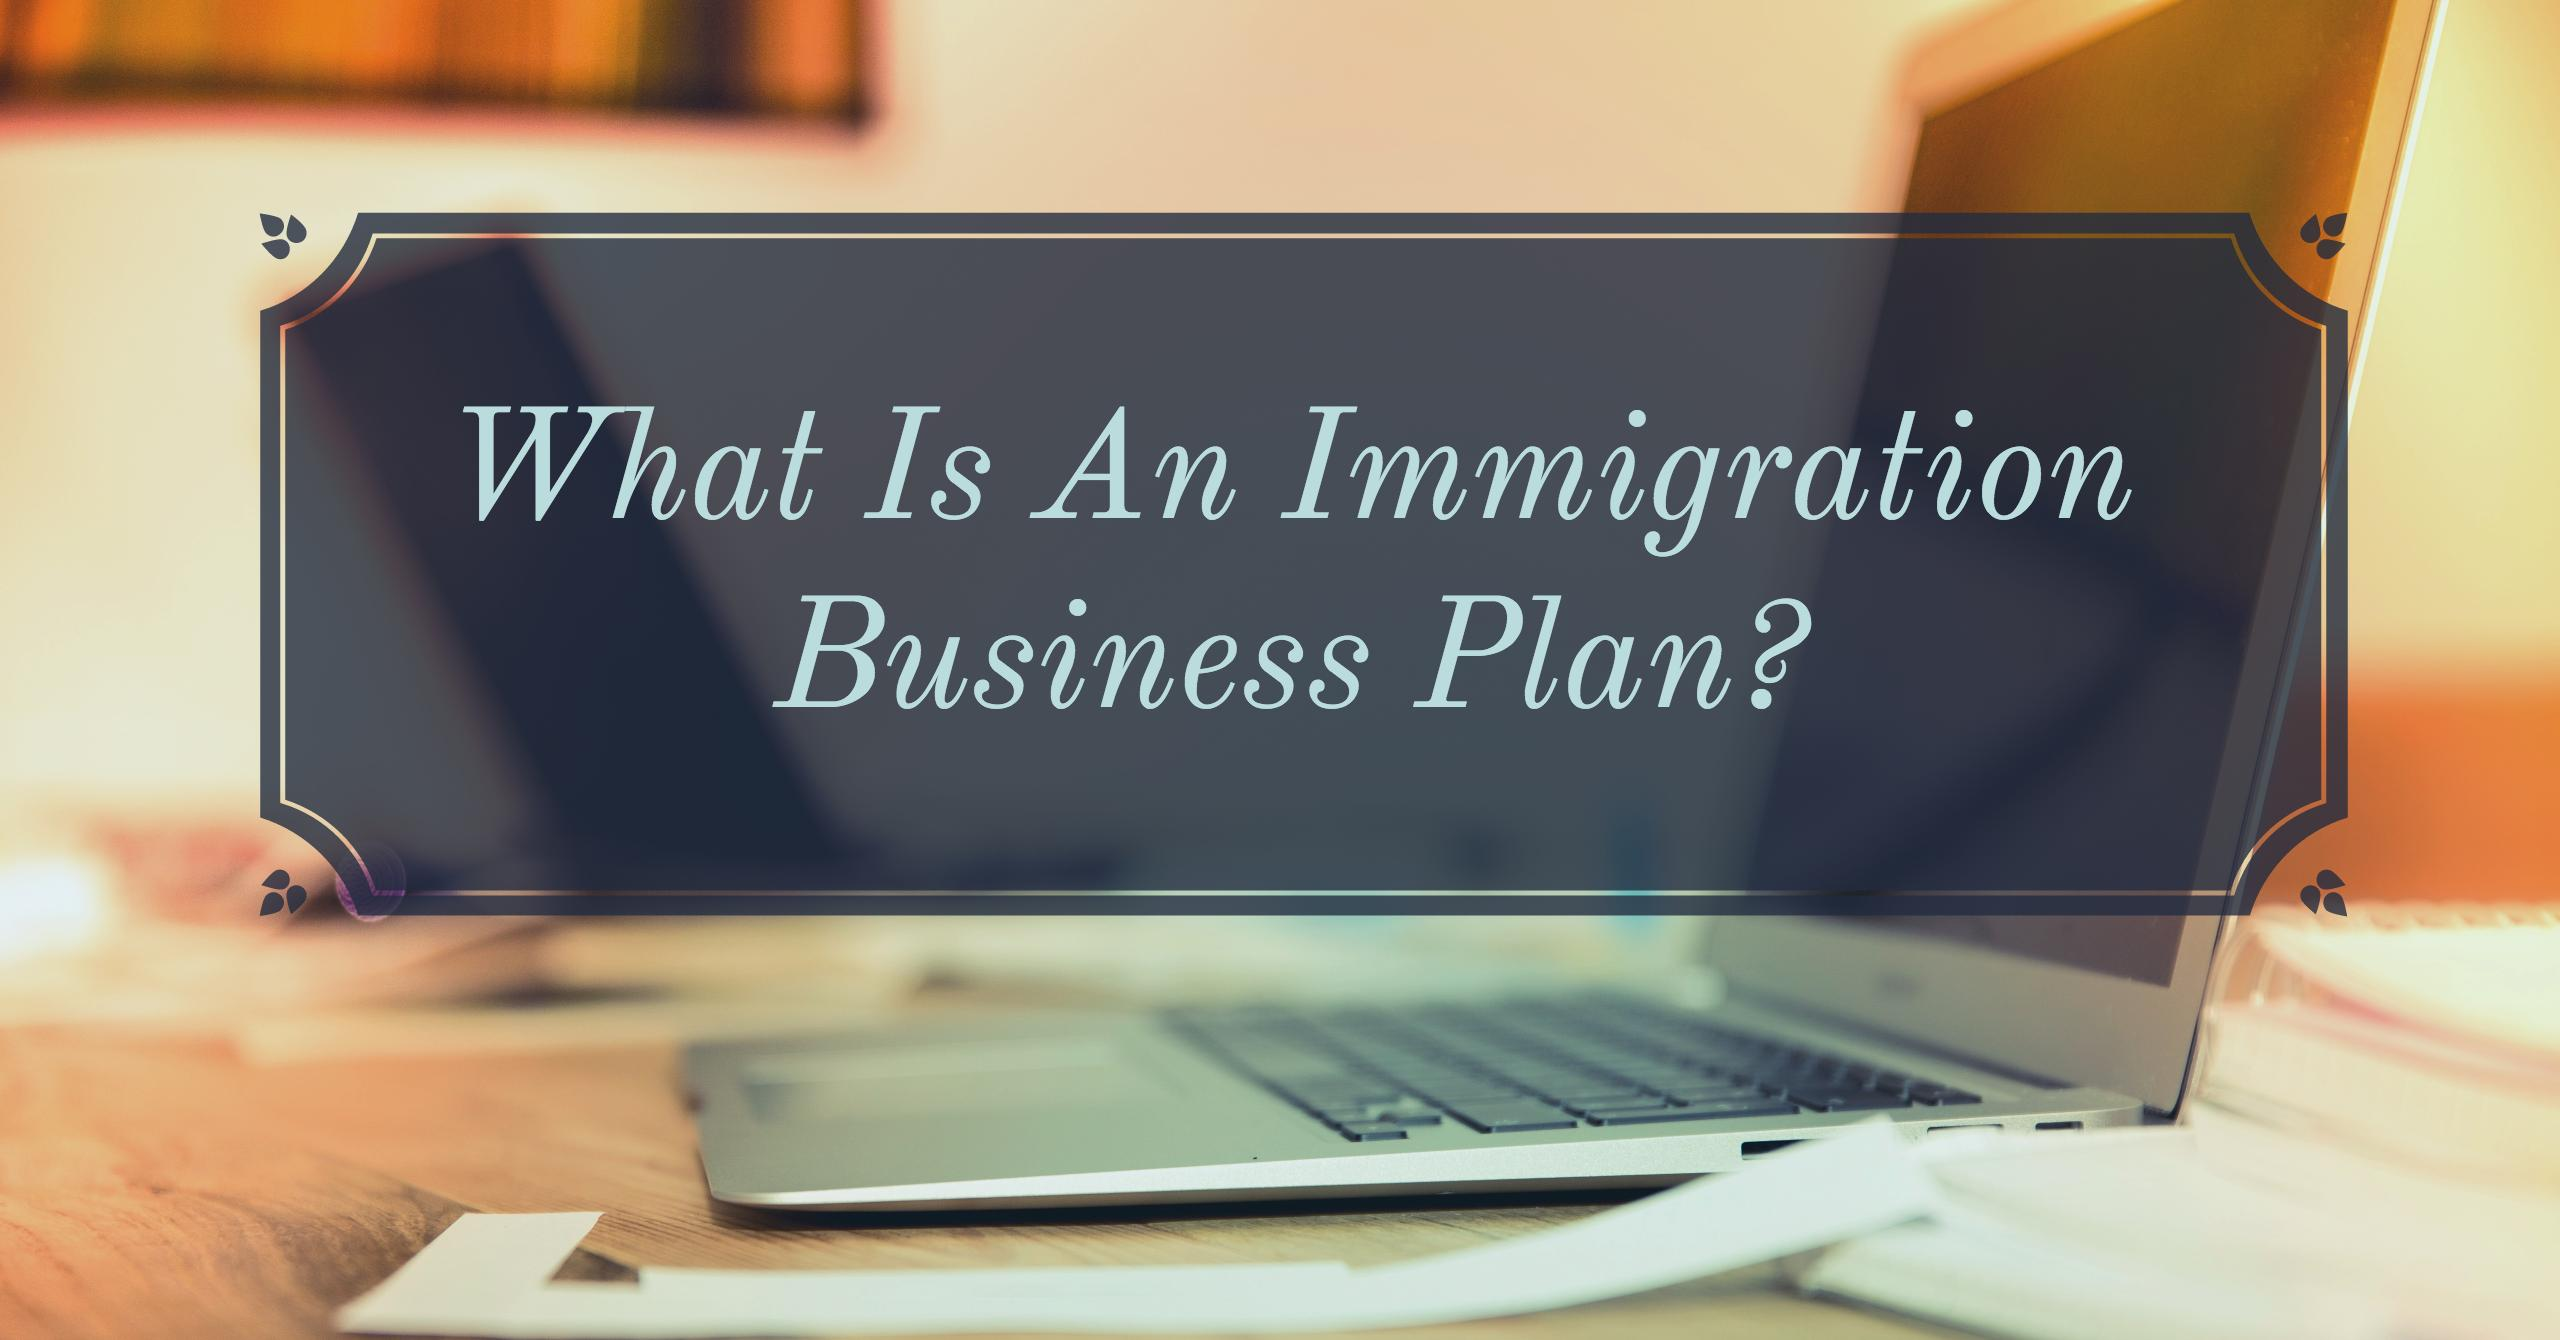 What is an immigration business plan? Immigration Business Plan